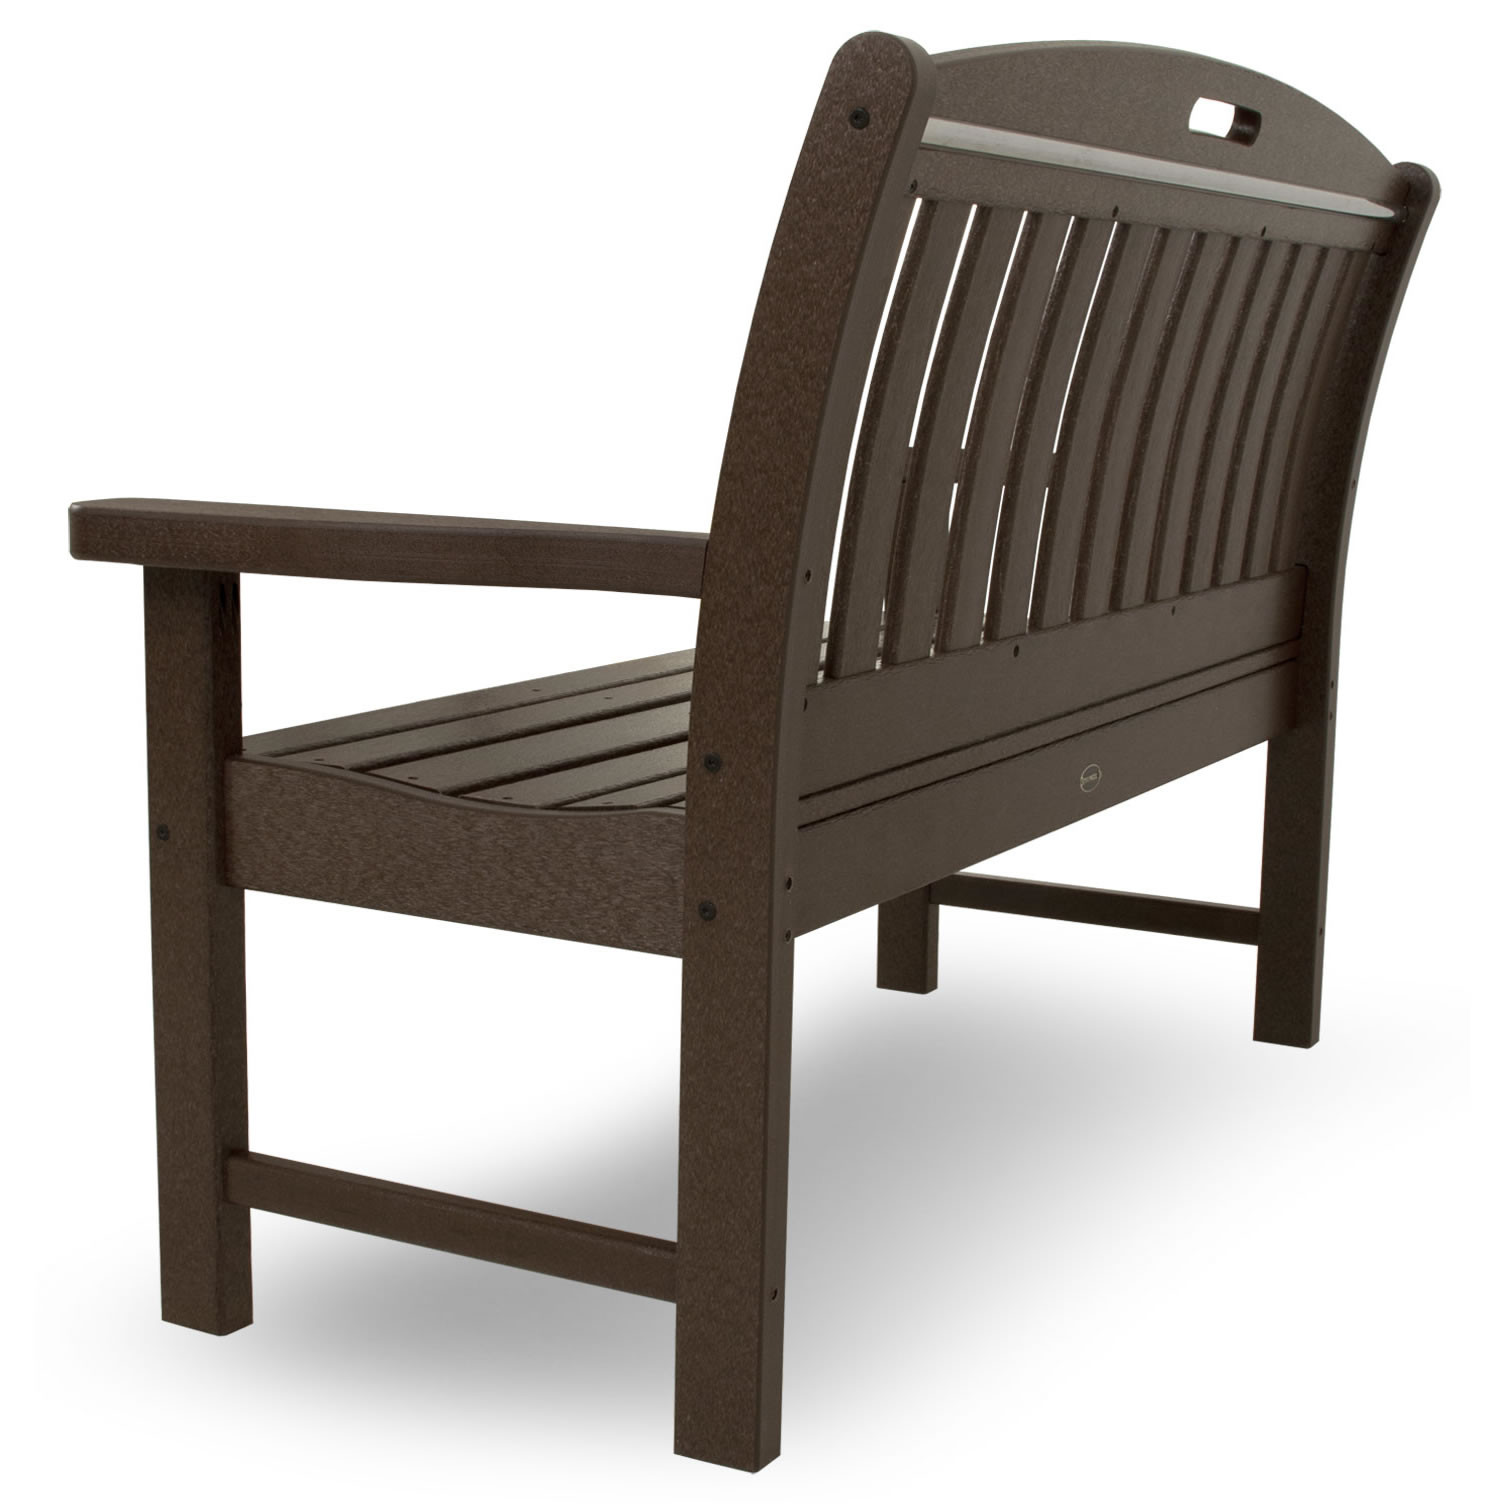 Polywood Nautical Bench Nautical Collection Polywood Outdoor Furniture Collections